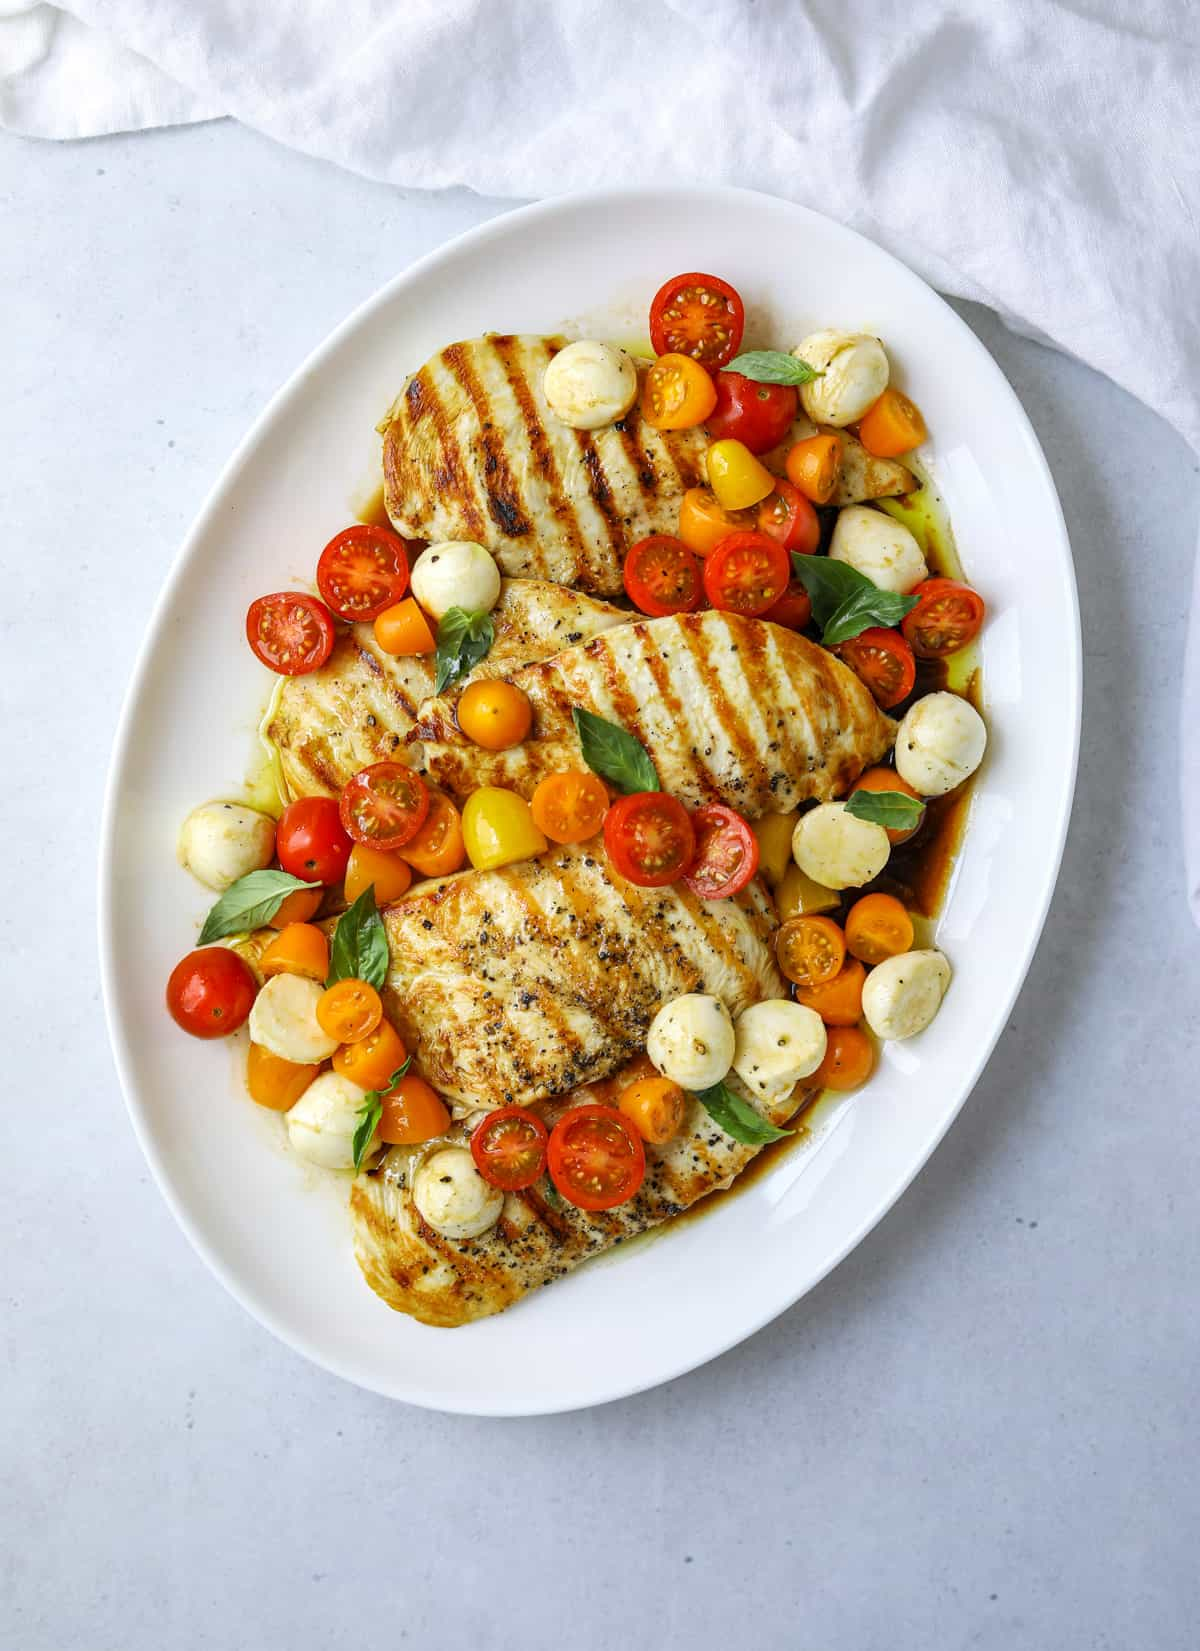 a round oval platter filled with grilled chicken breast topped with cherry tomatoes, mozzarella and fresh basil.